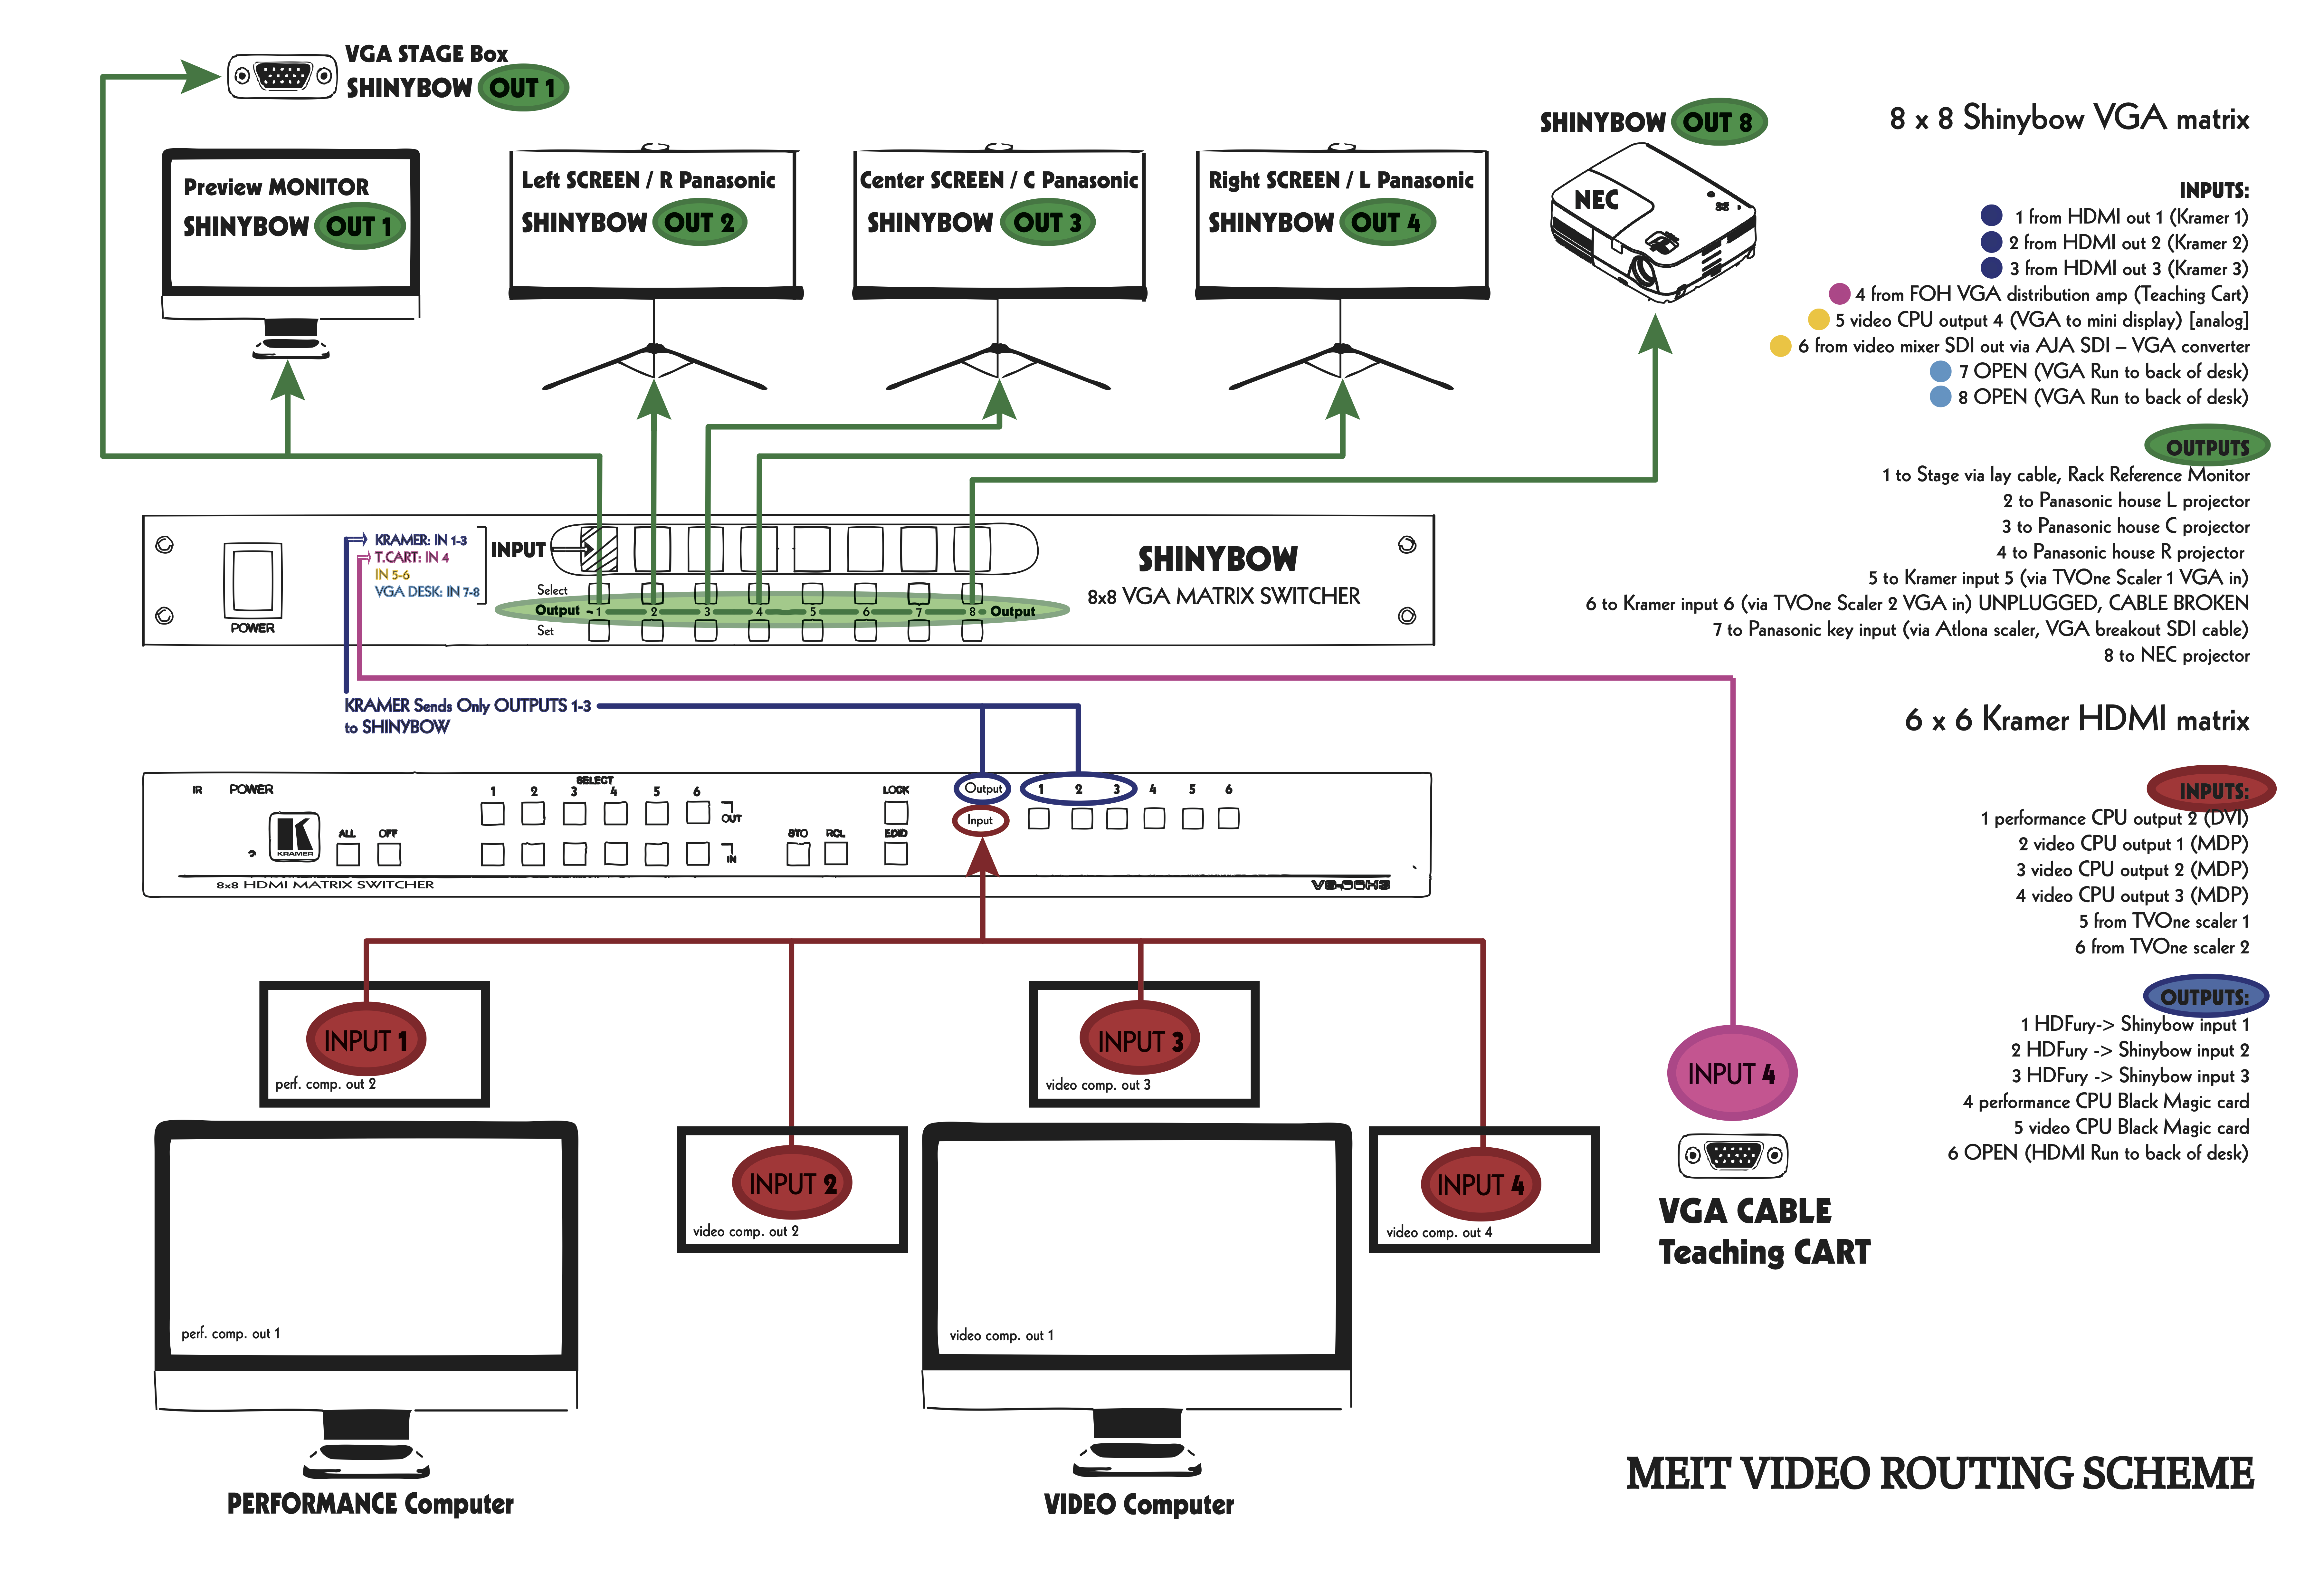 MEIT Video Routing System Schematic